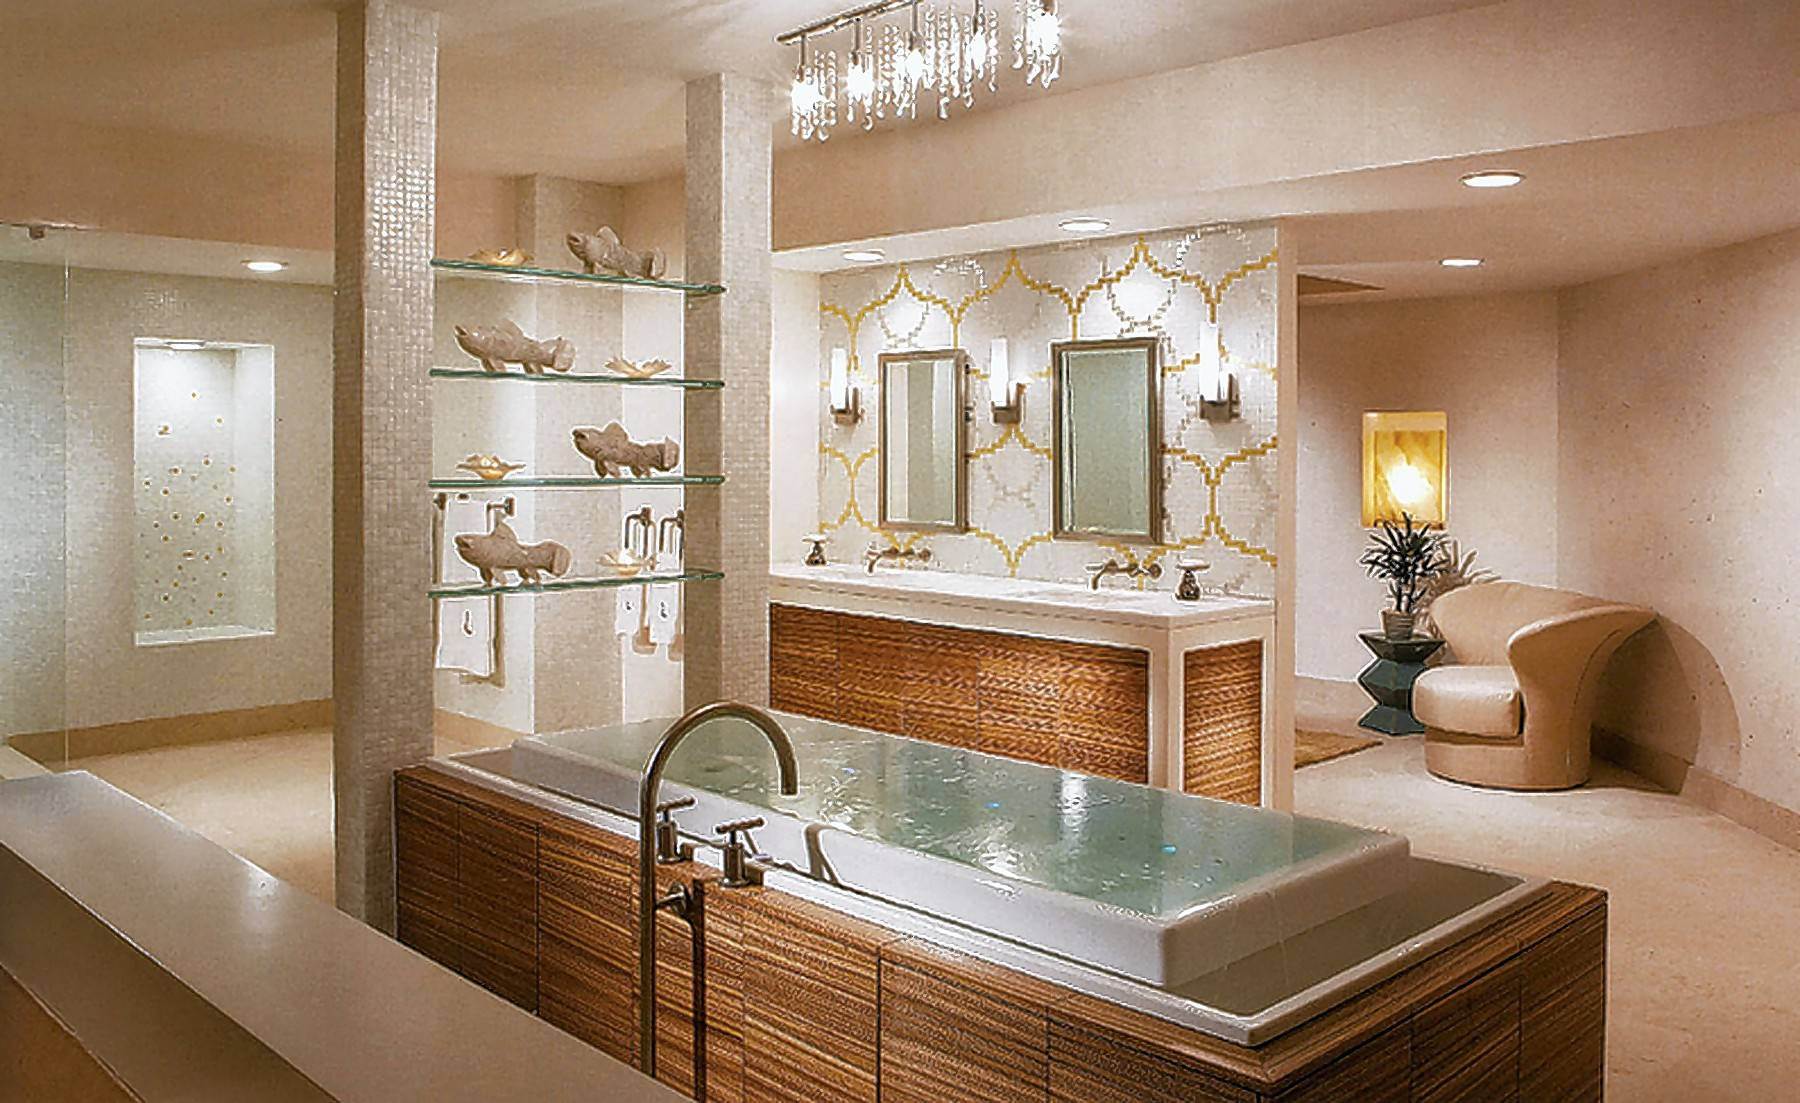 Creating An At Home Getaway Is The Goal When Transforming Your Bathroom  Into A Spa